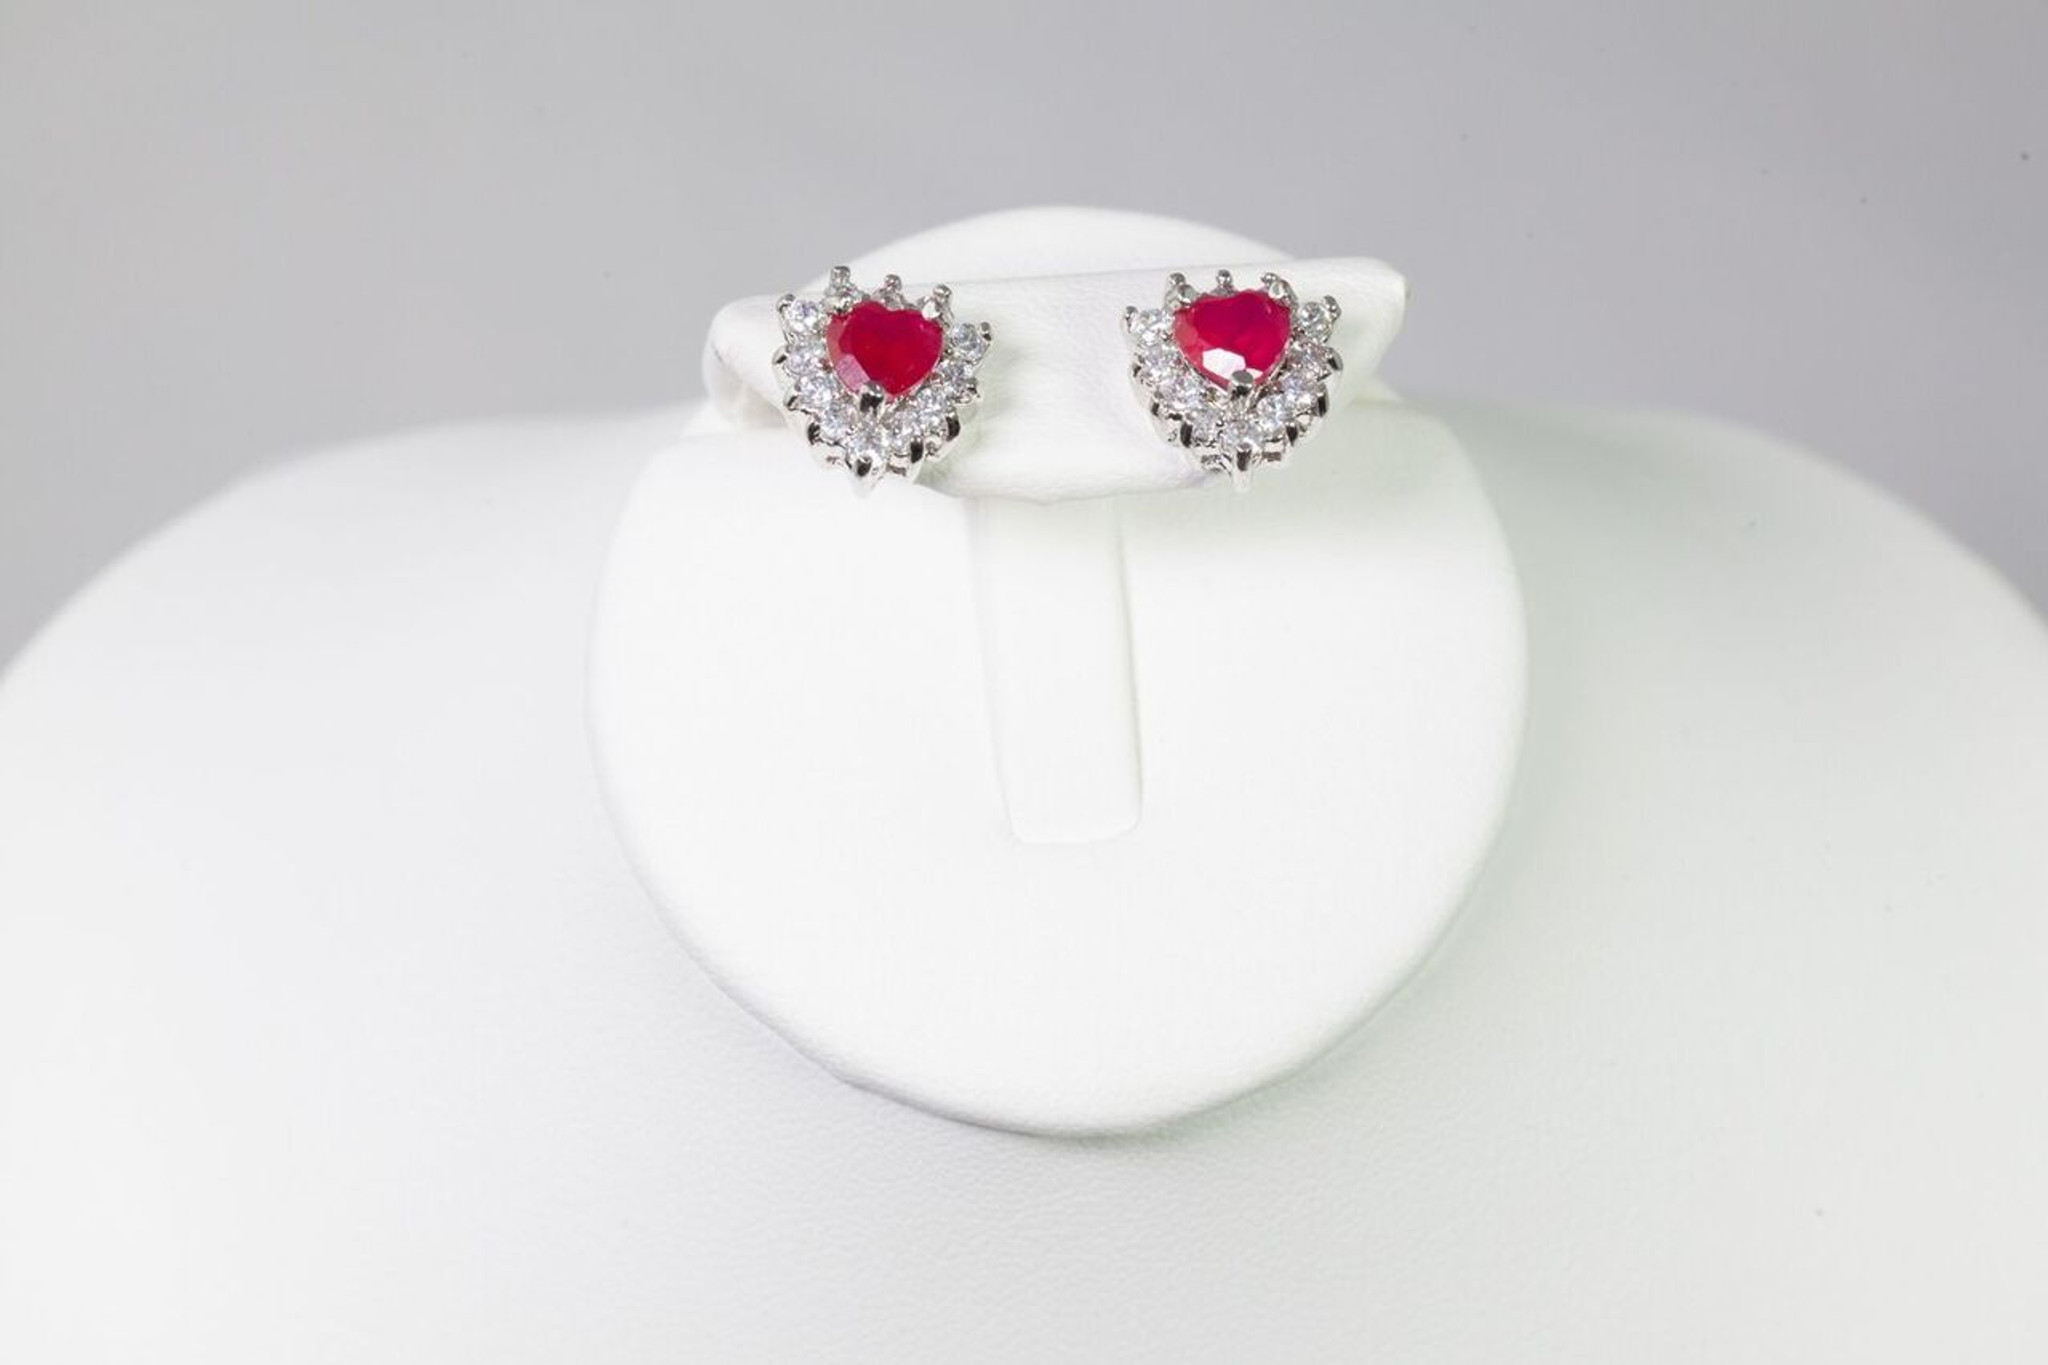 Pink Gem Stone Earrings 10kGP Hearts Shape